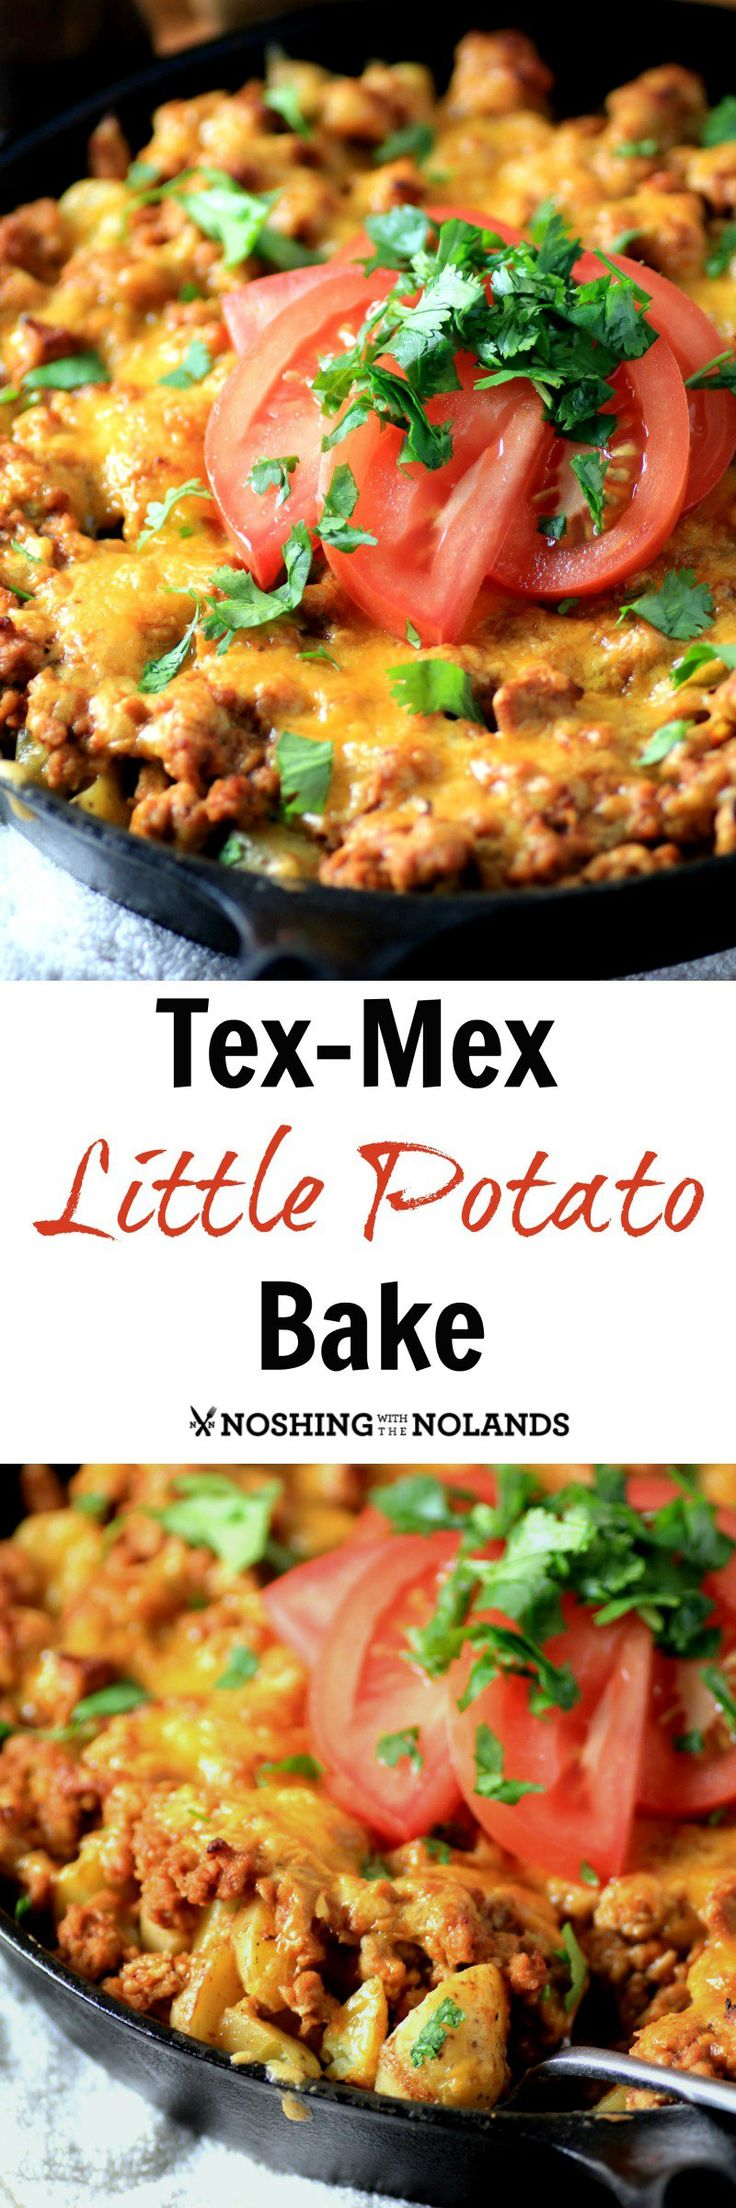 Tex Mex Little Potato Bake Recipe Potatoes New Year S And Casseroles